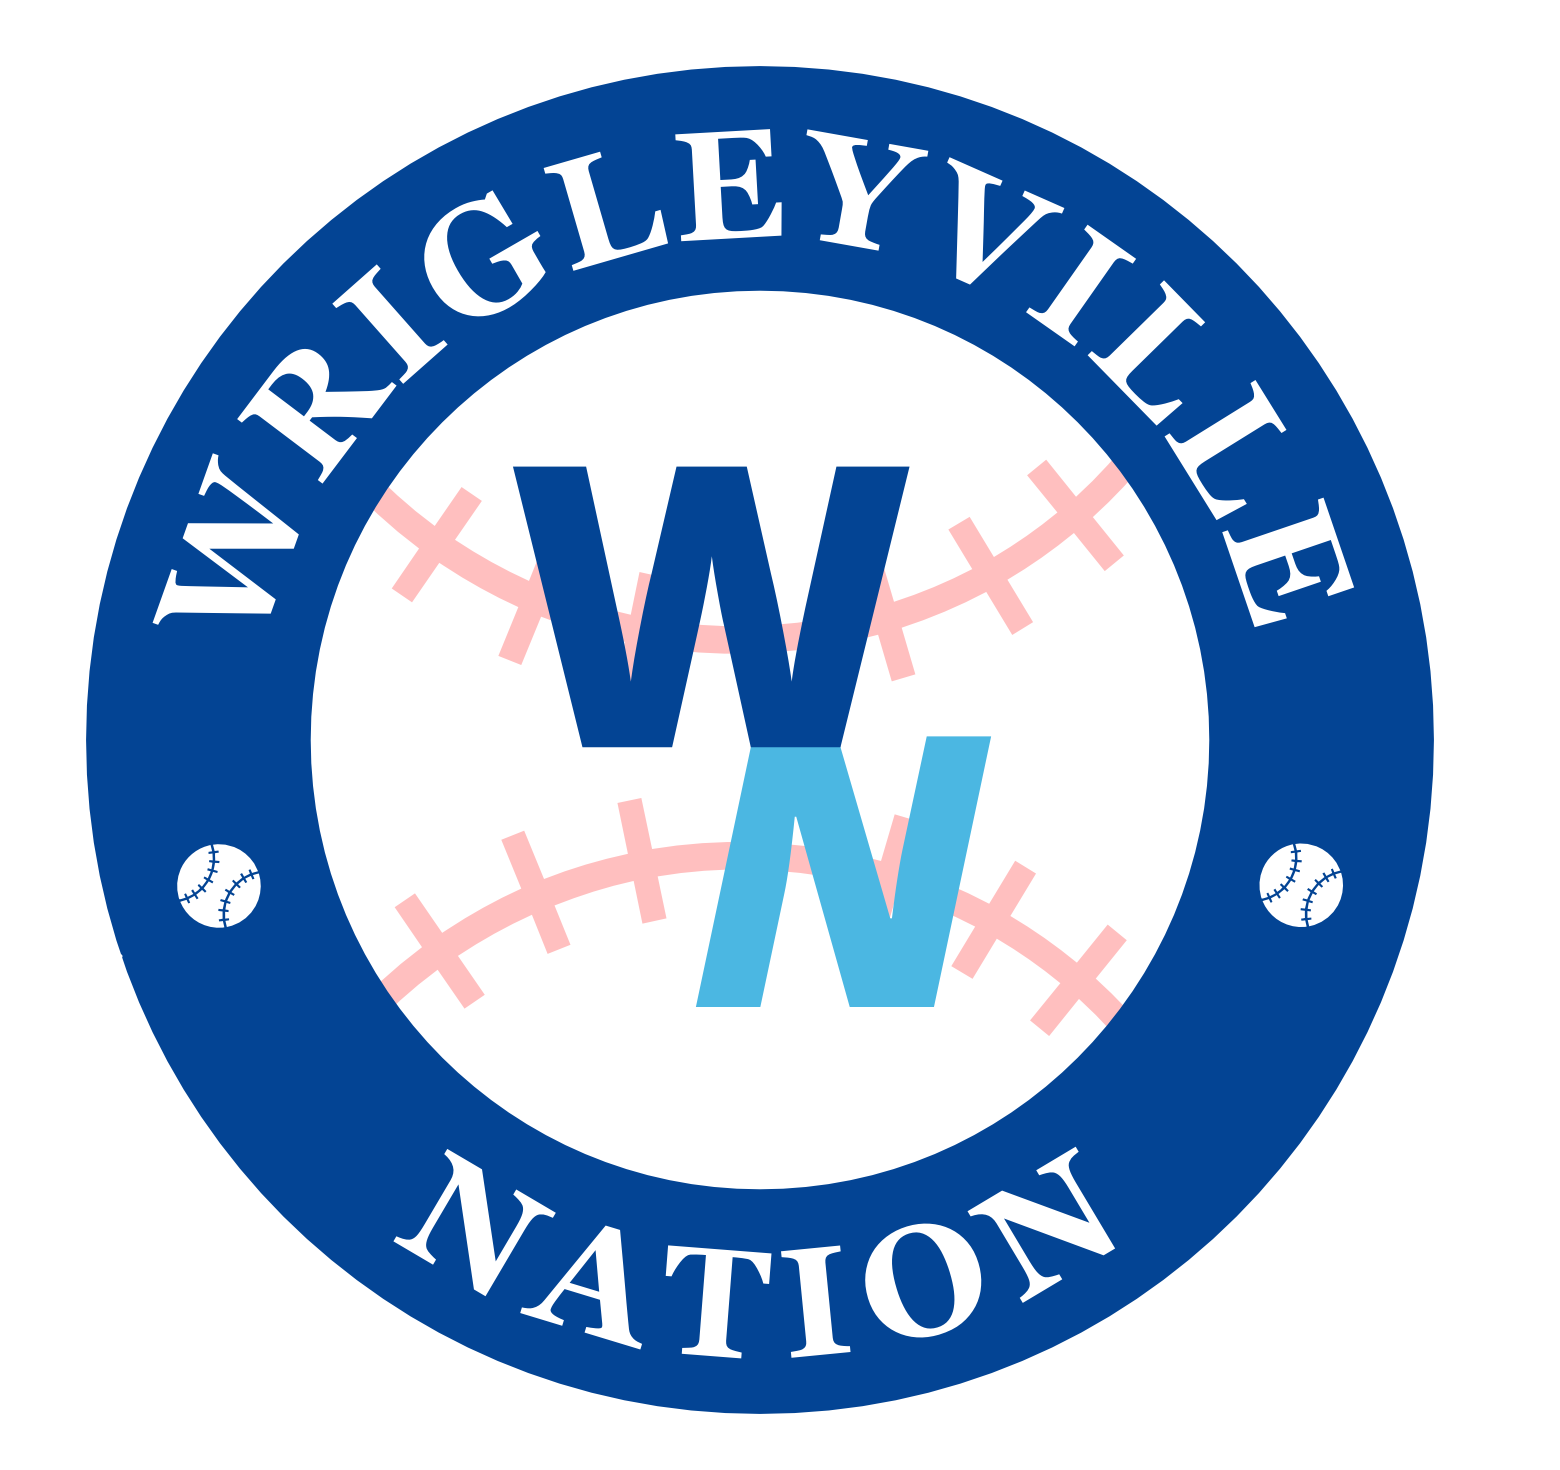 Wrigleyville Nation Ep 214 - Guest: Harry Pavlidis, Maddon Gone, End of Season Closure show art